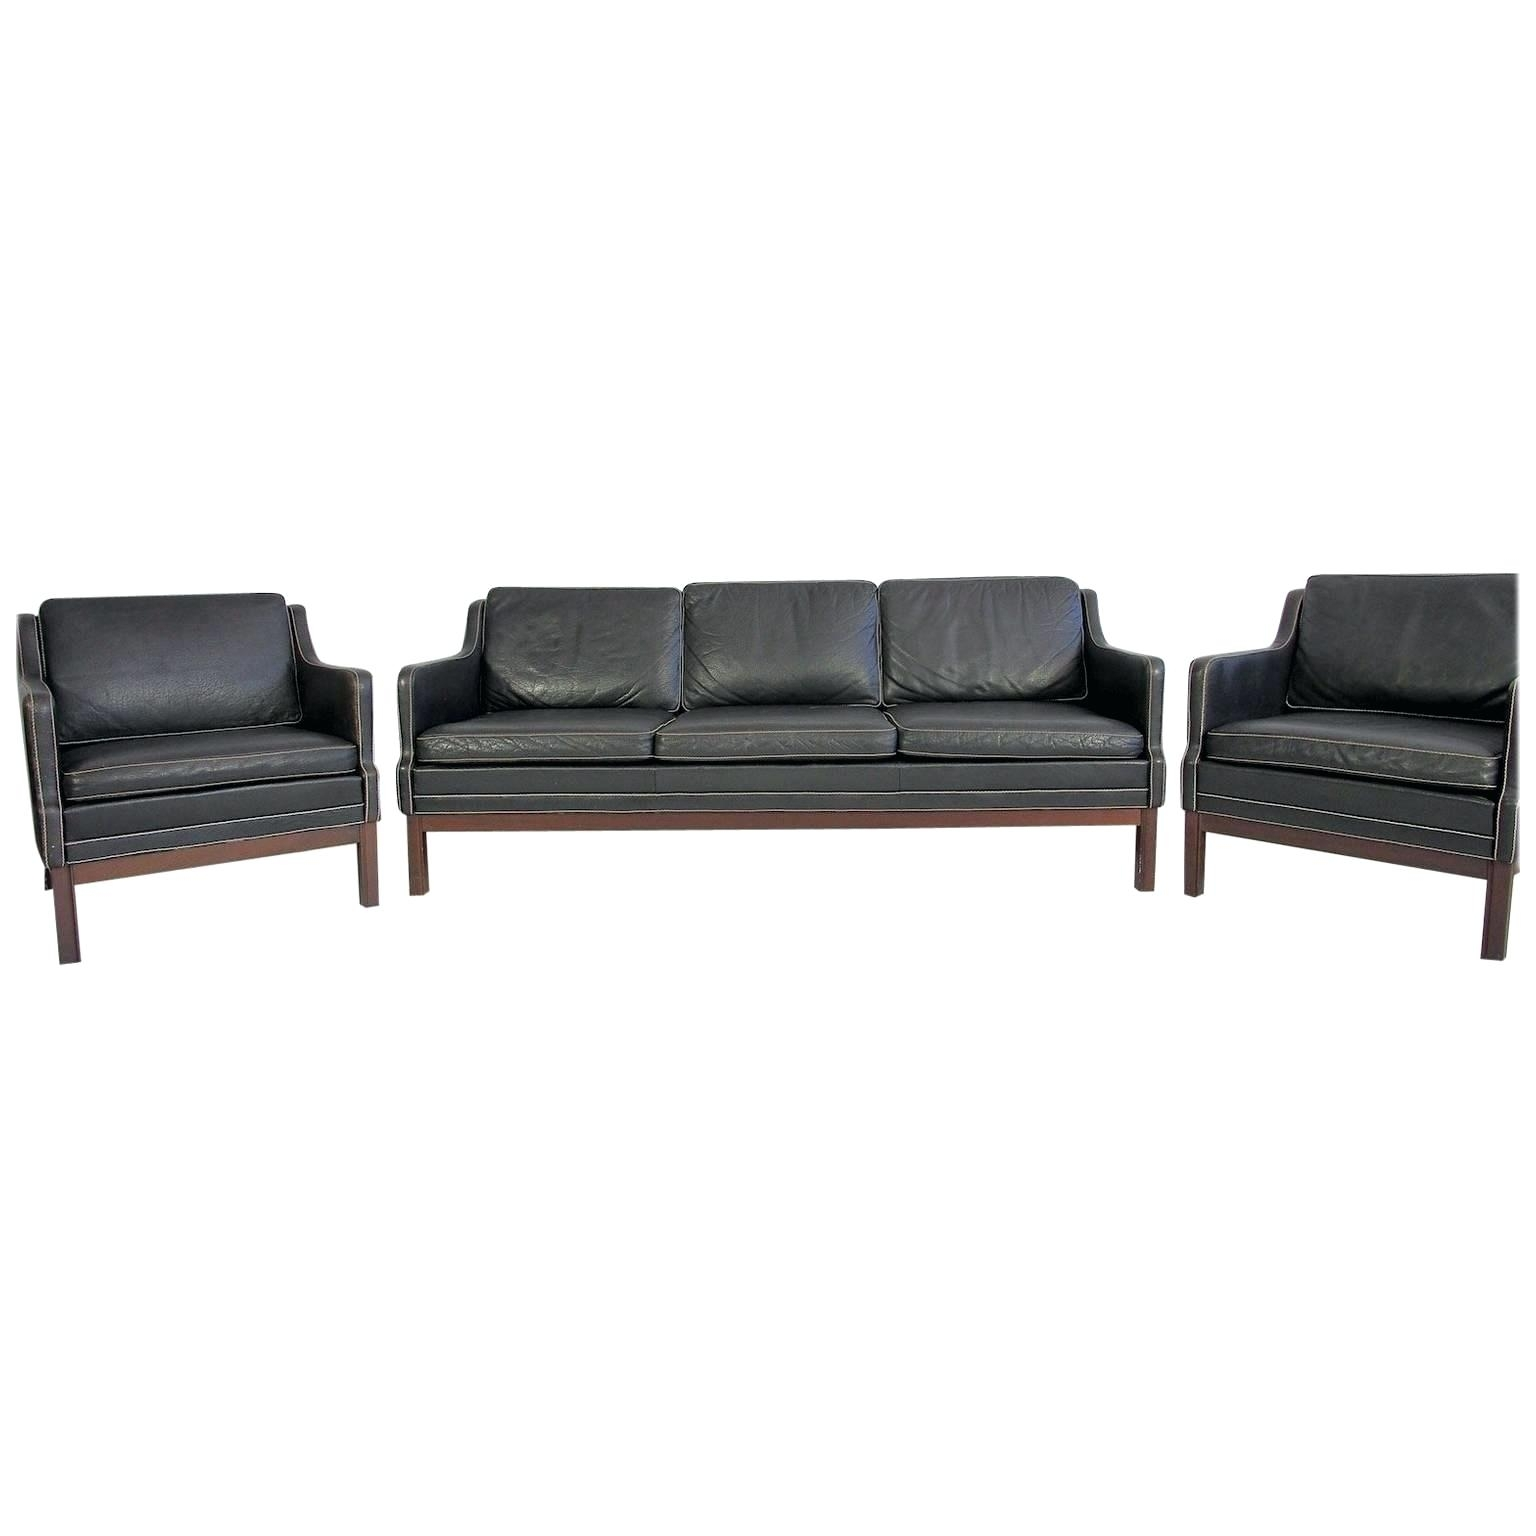 Buffalo Leather Couch Se Buffalo Leather Sectional Sofa – Thedropin (View 3 of 10)